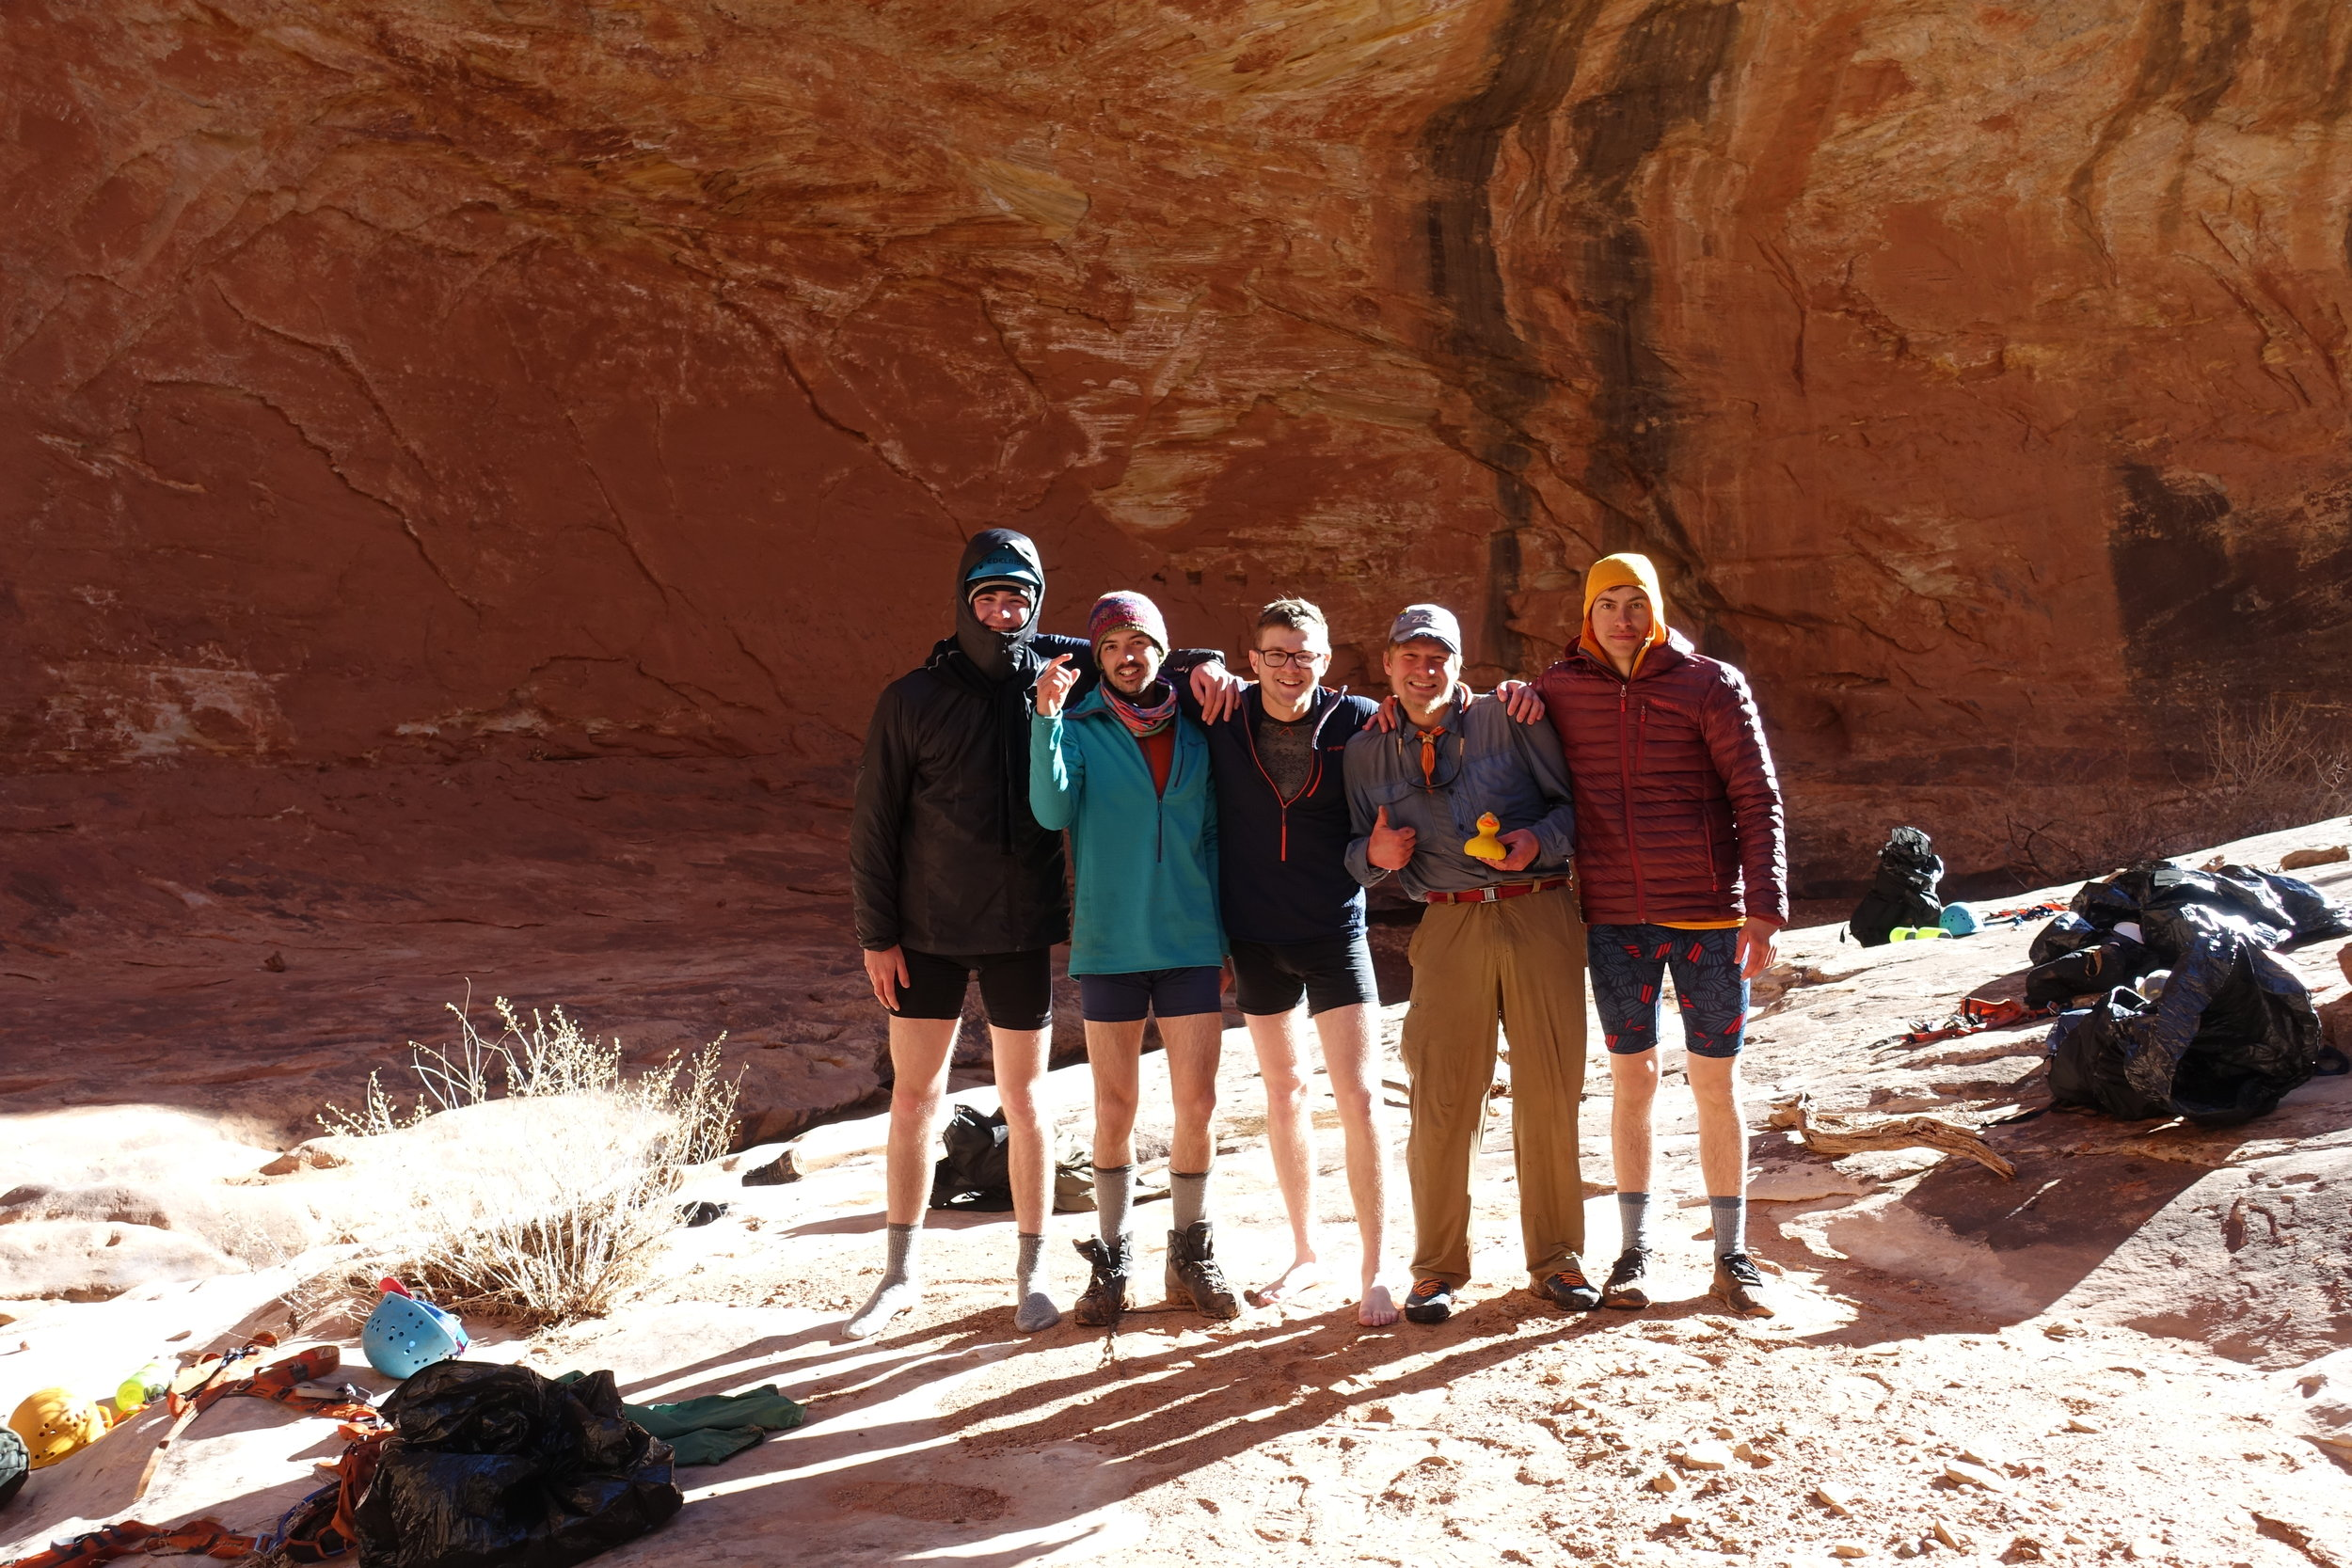 Nick, Daniel, Me, James, & Joey posing in our skivvies after 2 very cold swims in the slot canyon.